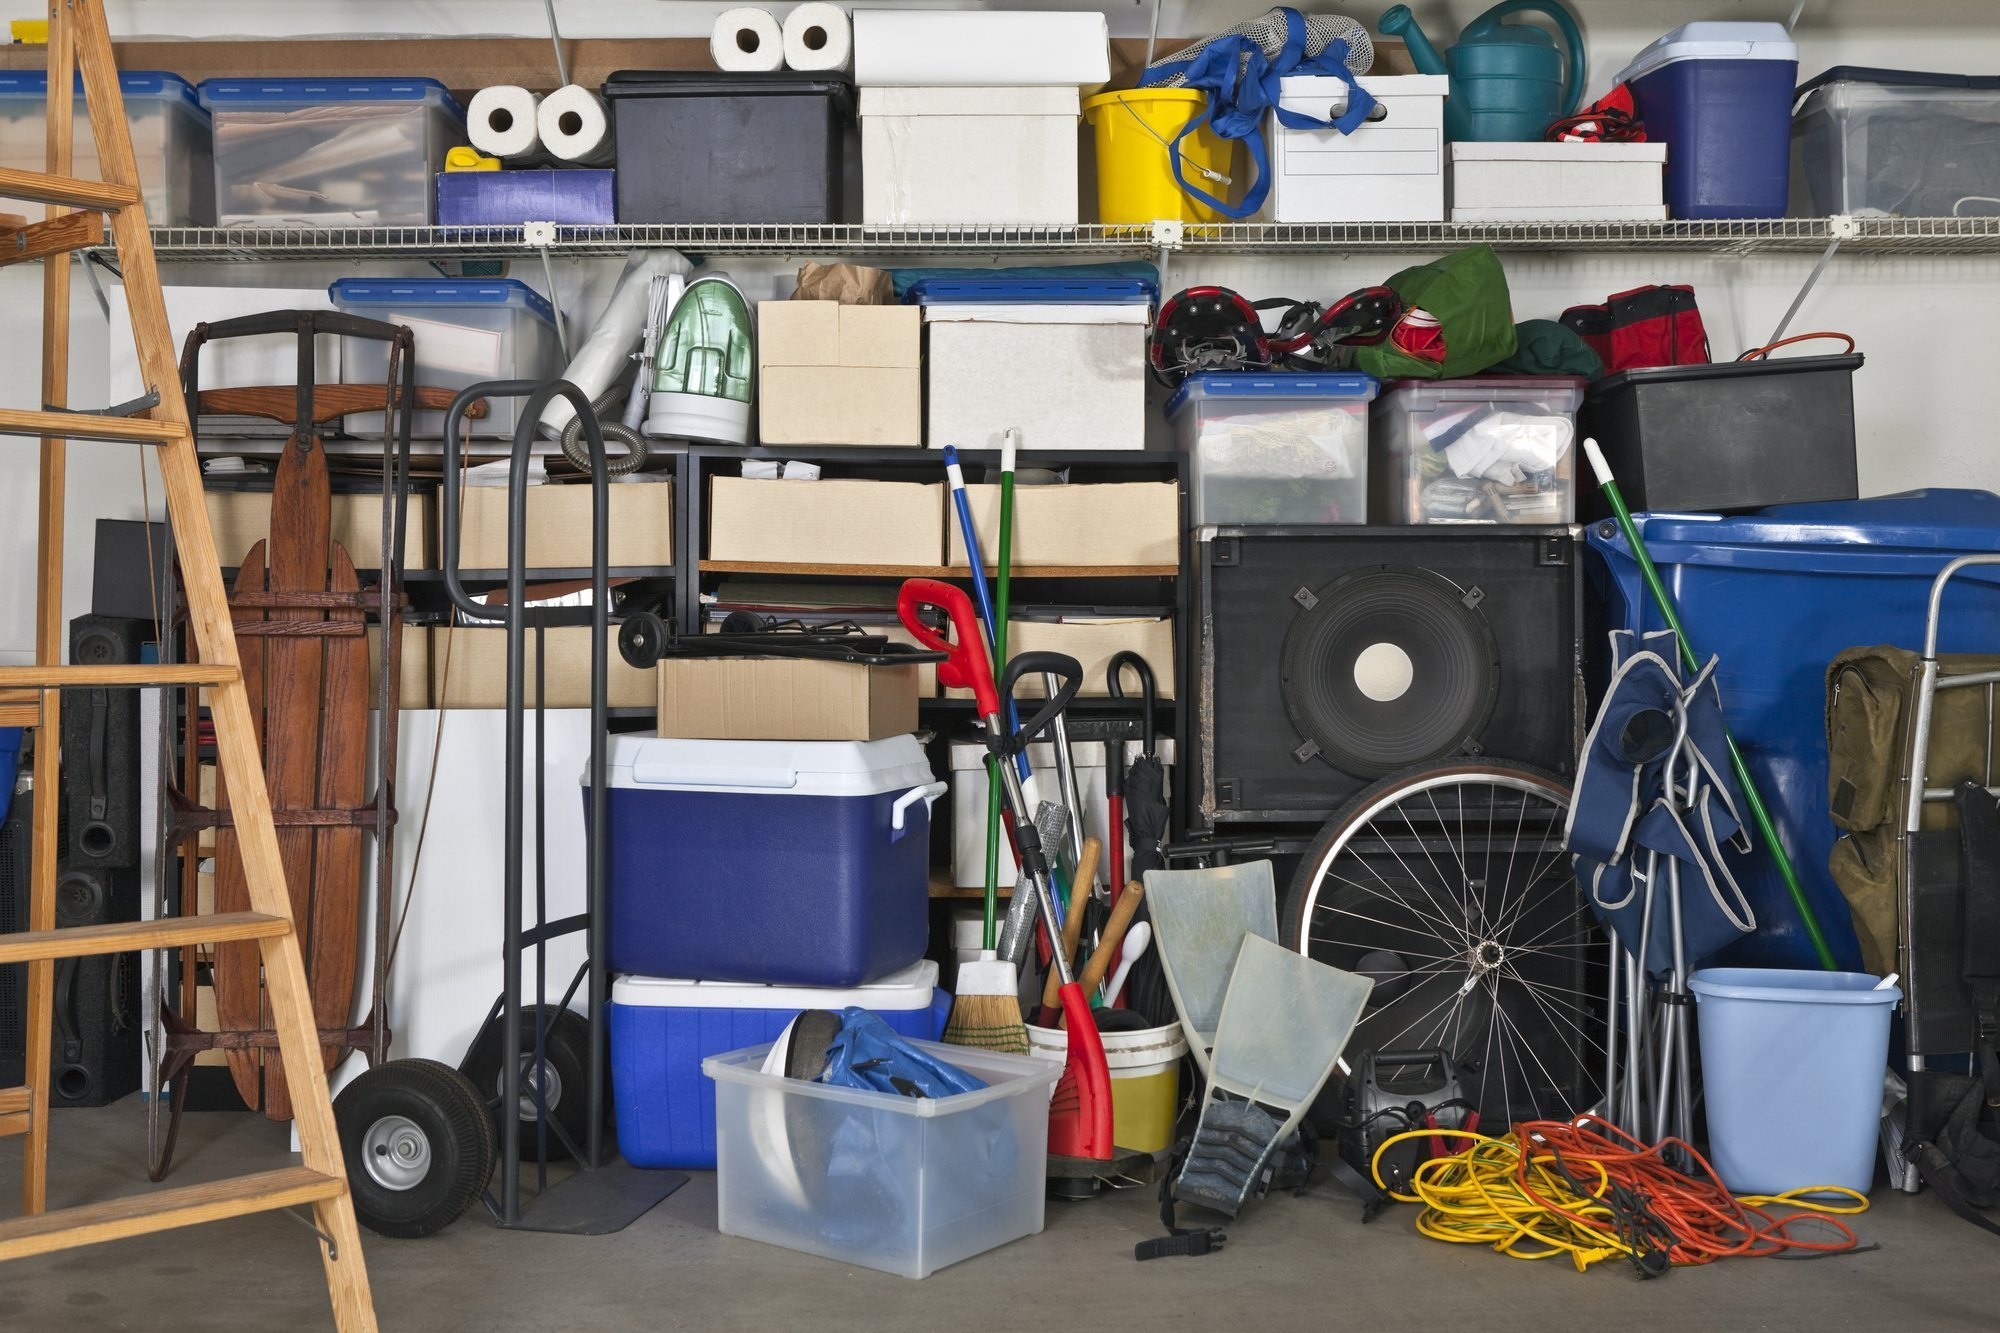 How To Inspect and Do Repairs On Your Own Storage Room